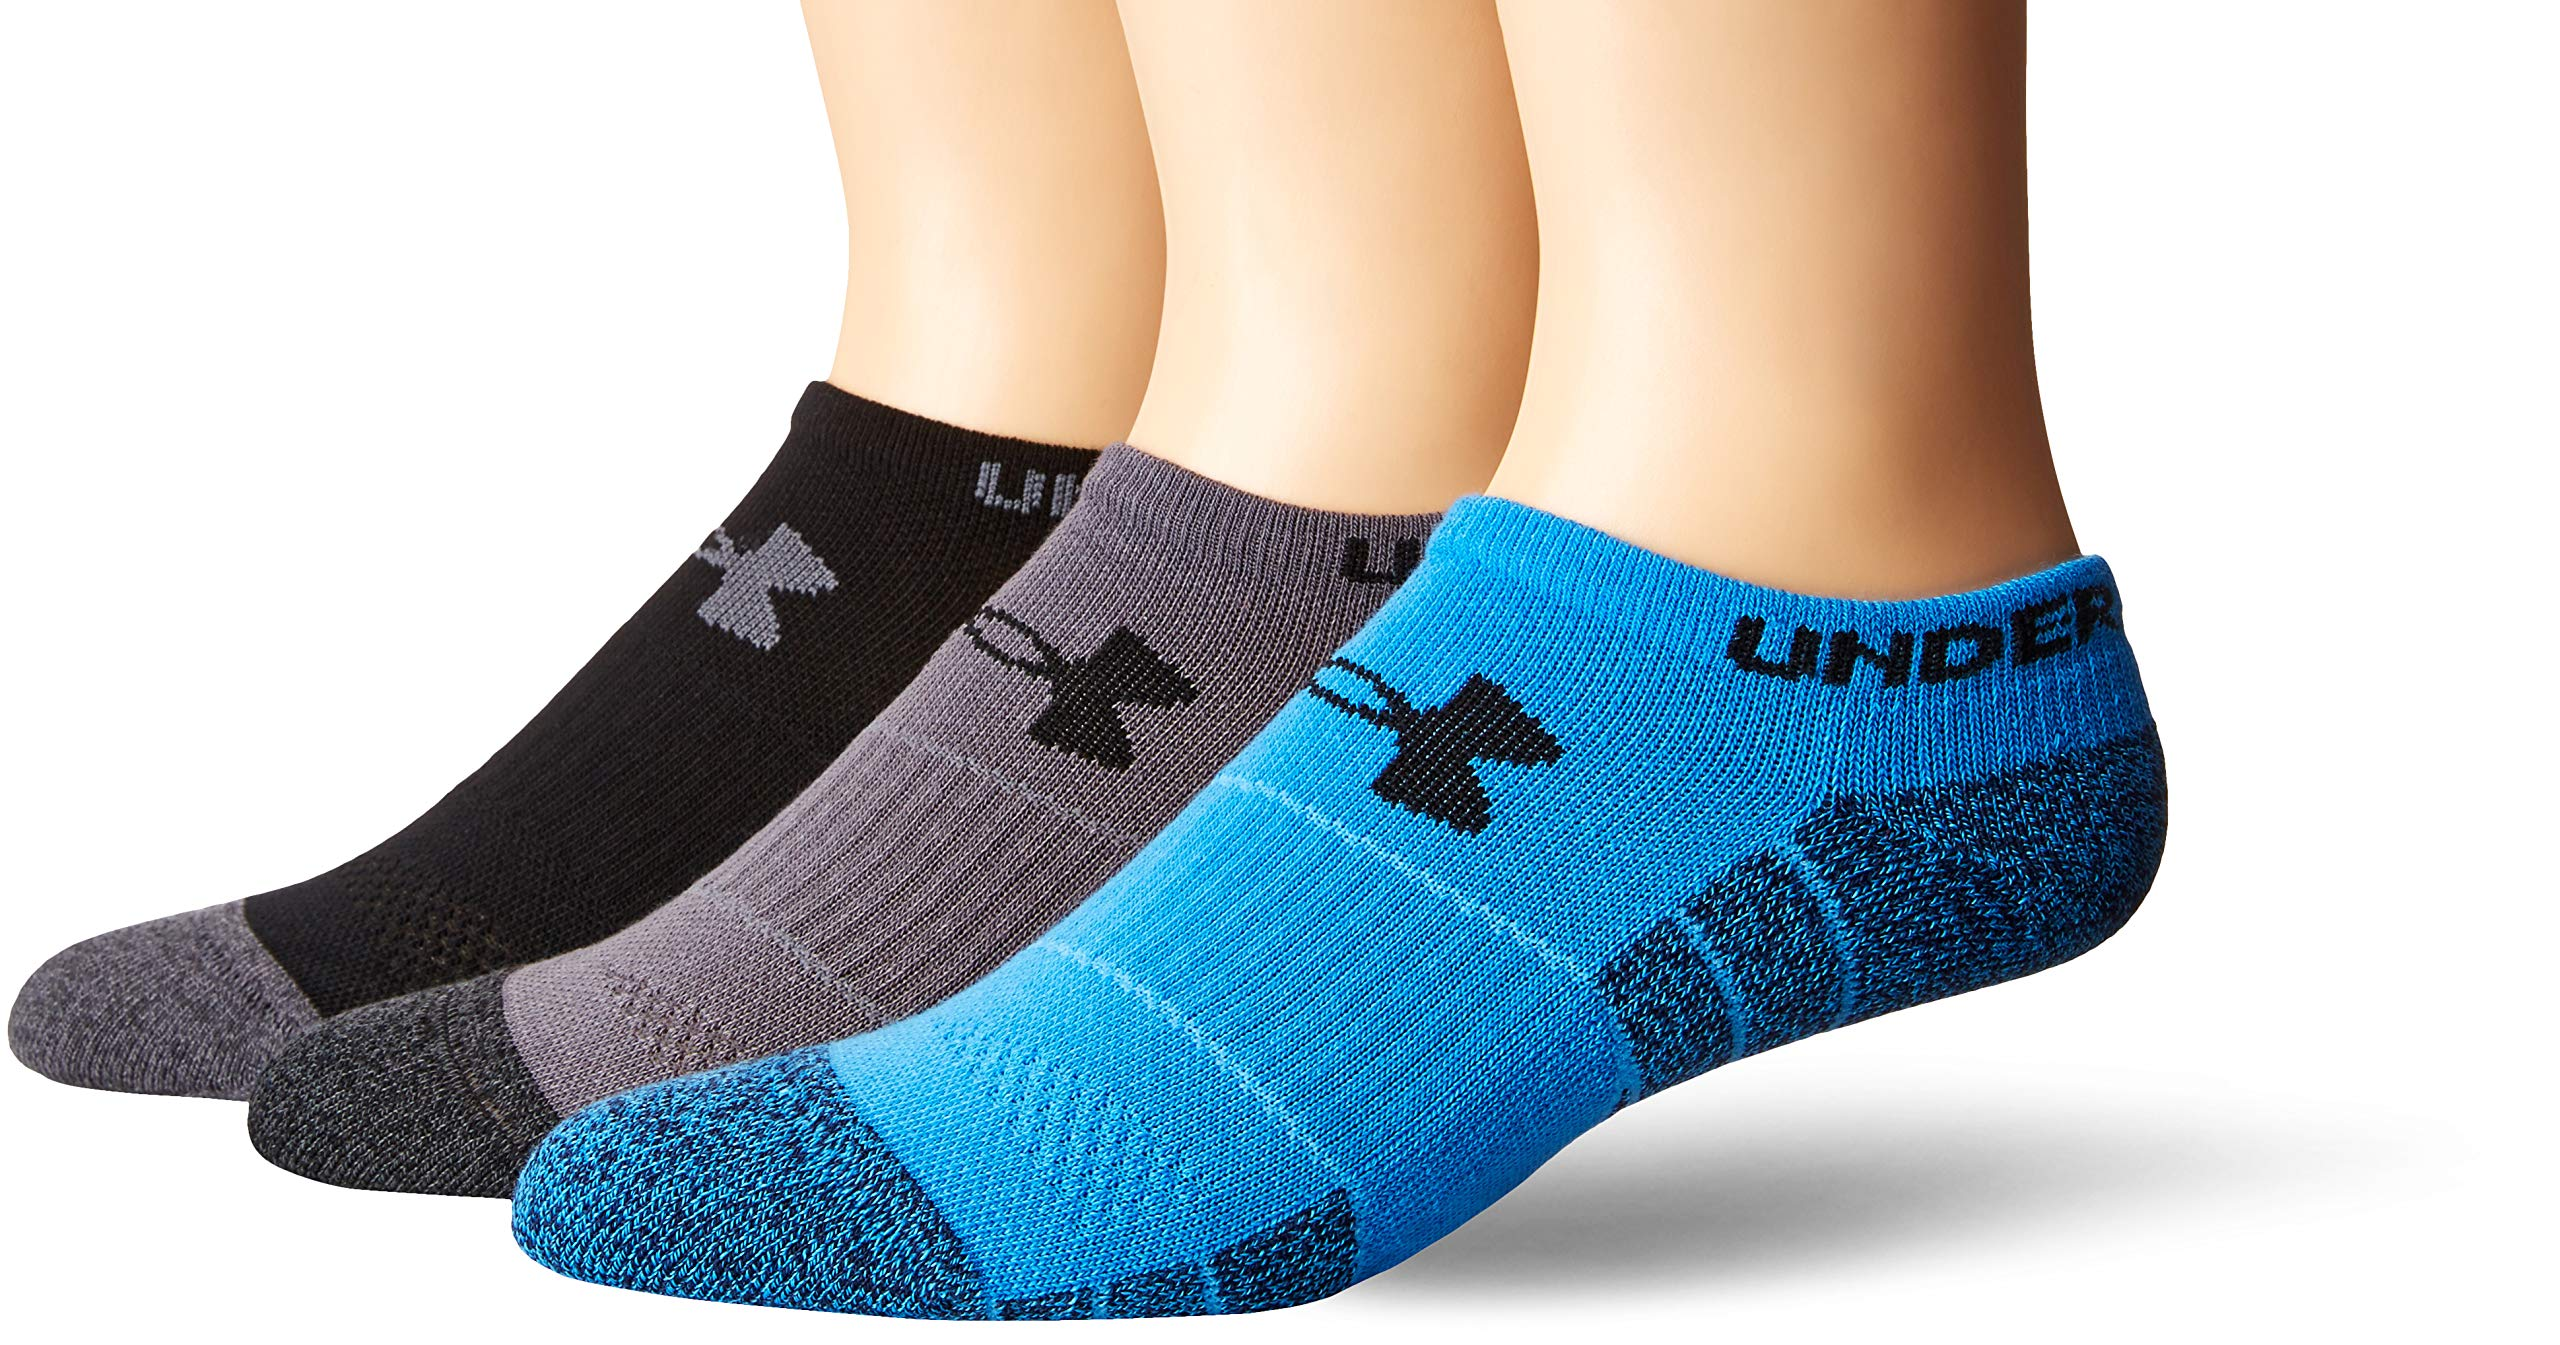 Under Armour Men's Elevated Performance No Show (3 Pack), Blue Marl/Assorted, Medium by Under Armour